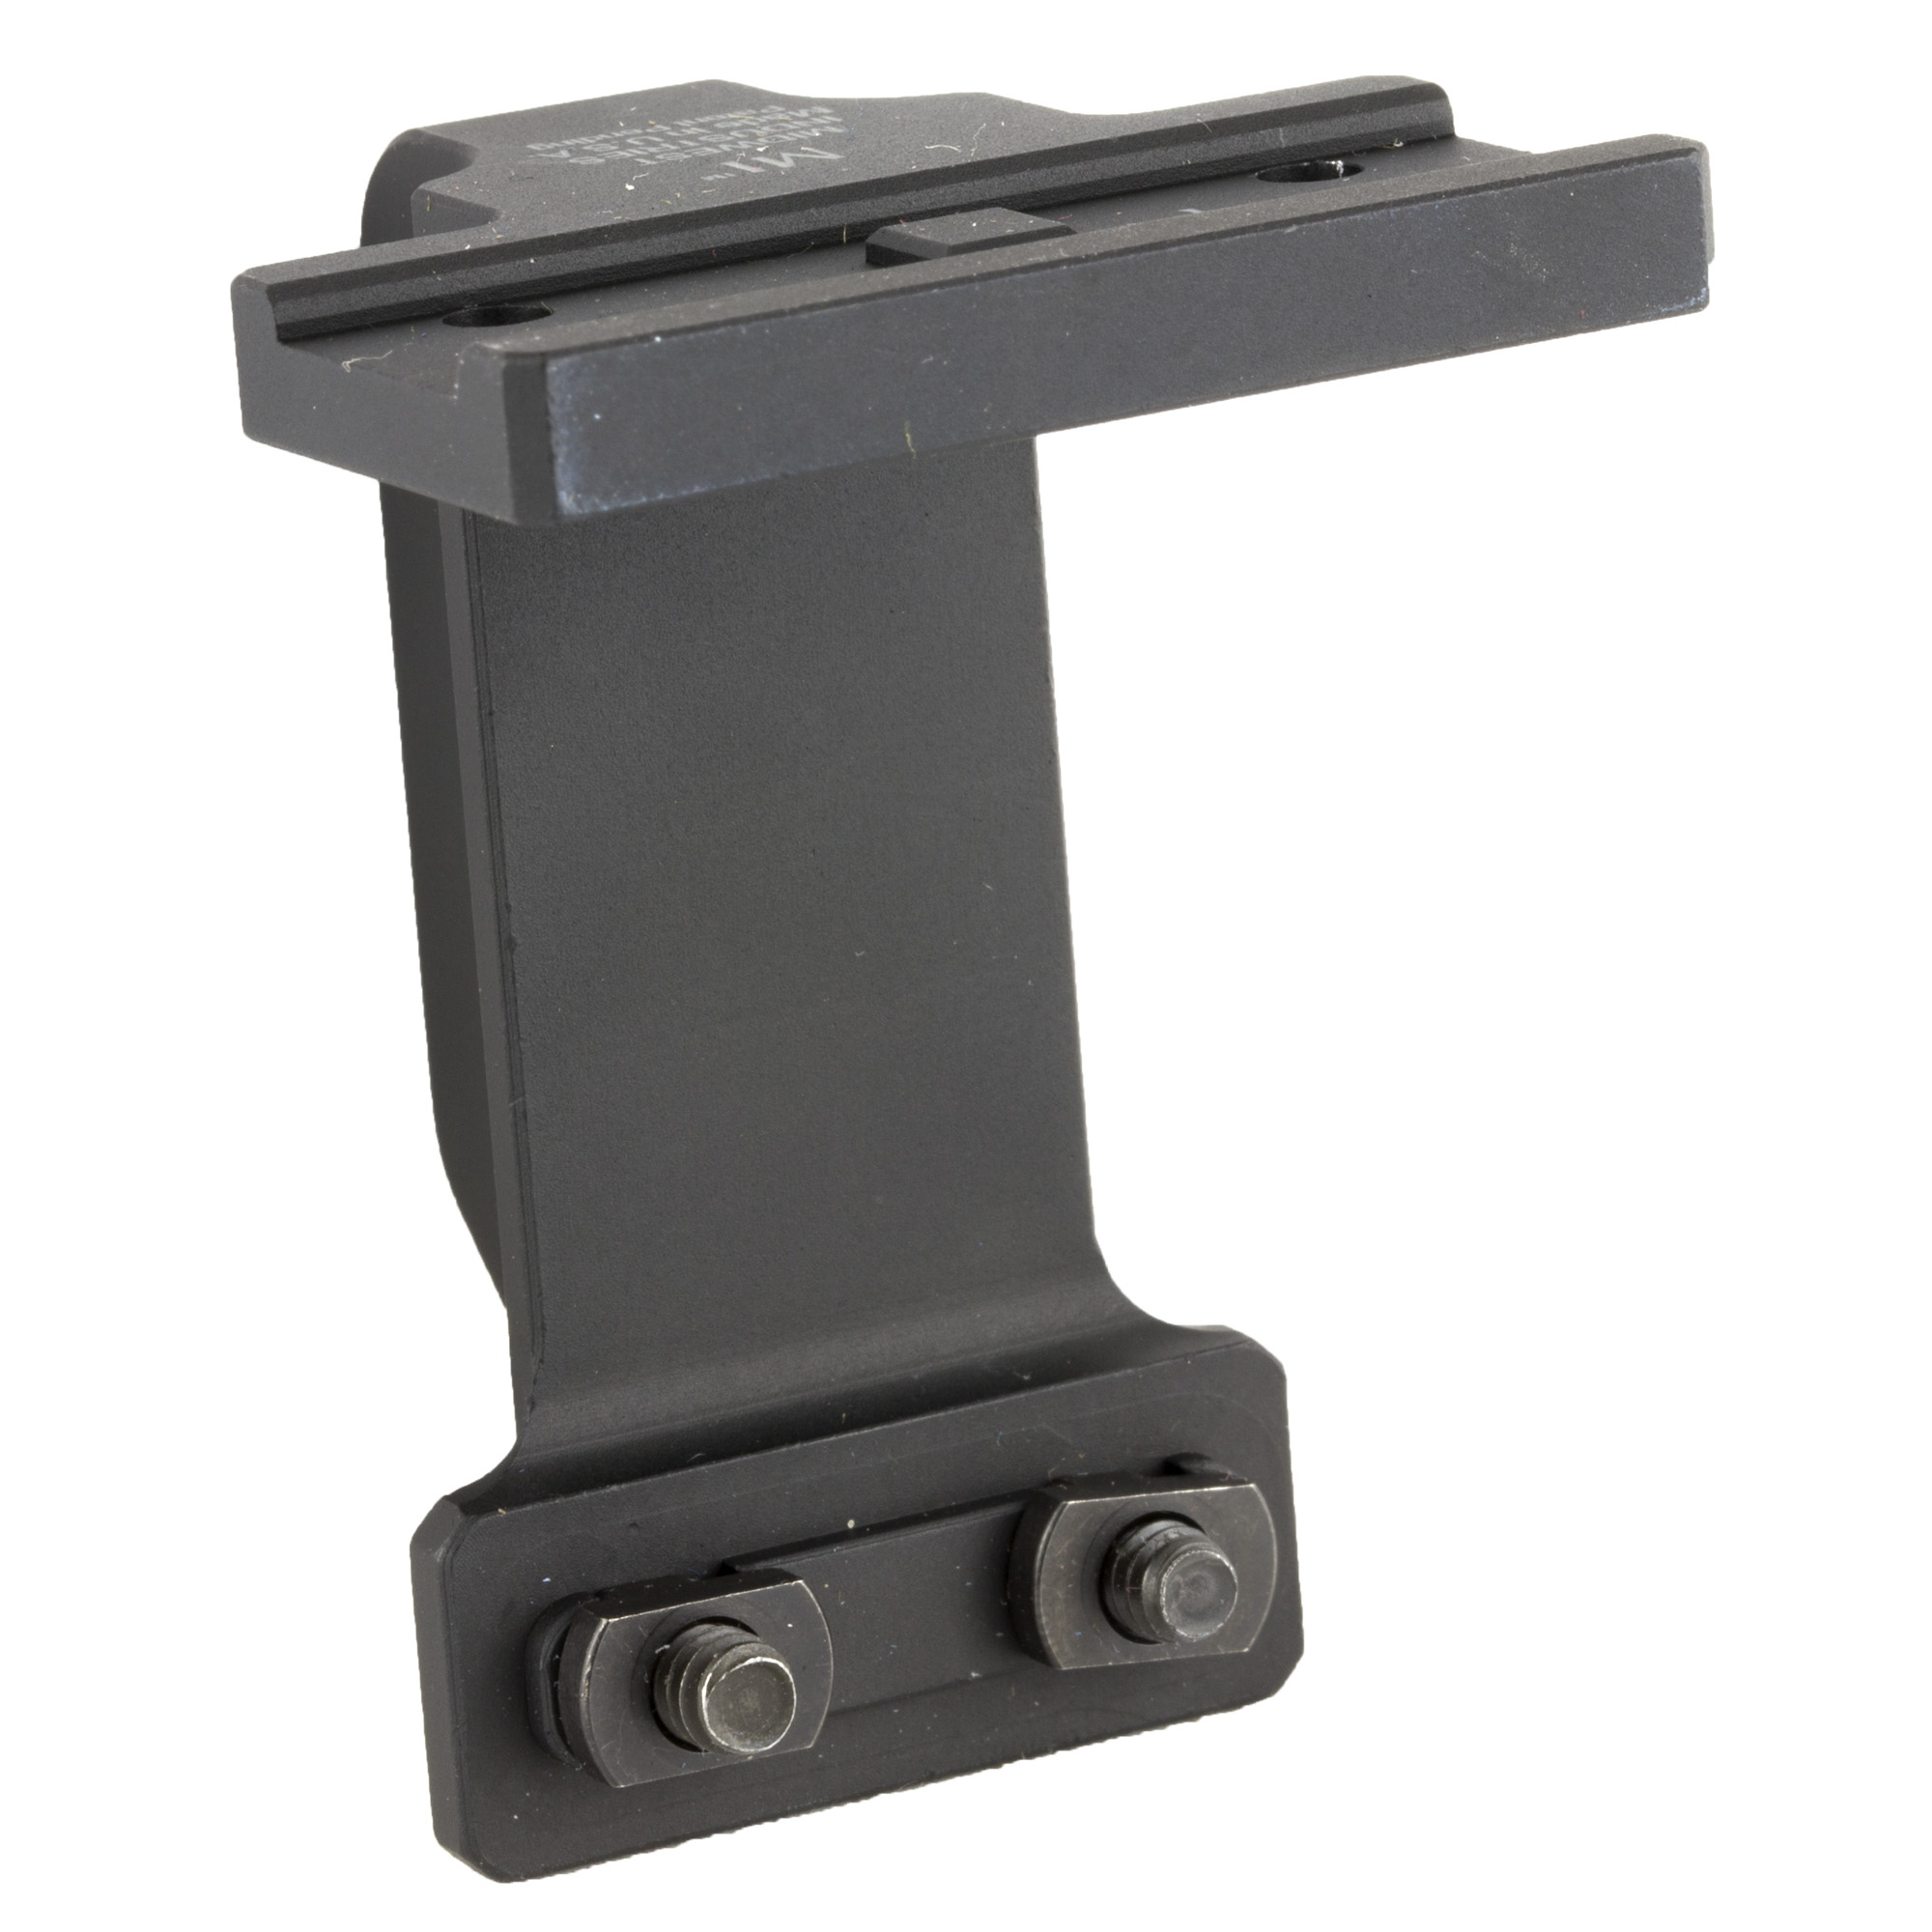 Gen 2 mount for sub 2000 type rifles works with Aimpoint T1 red dots and is made by Midwest Industries.